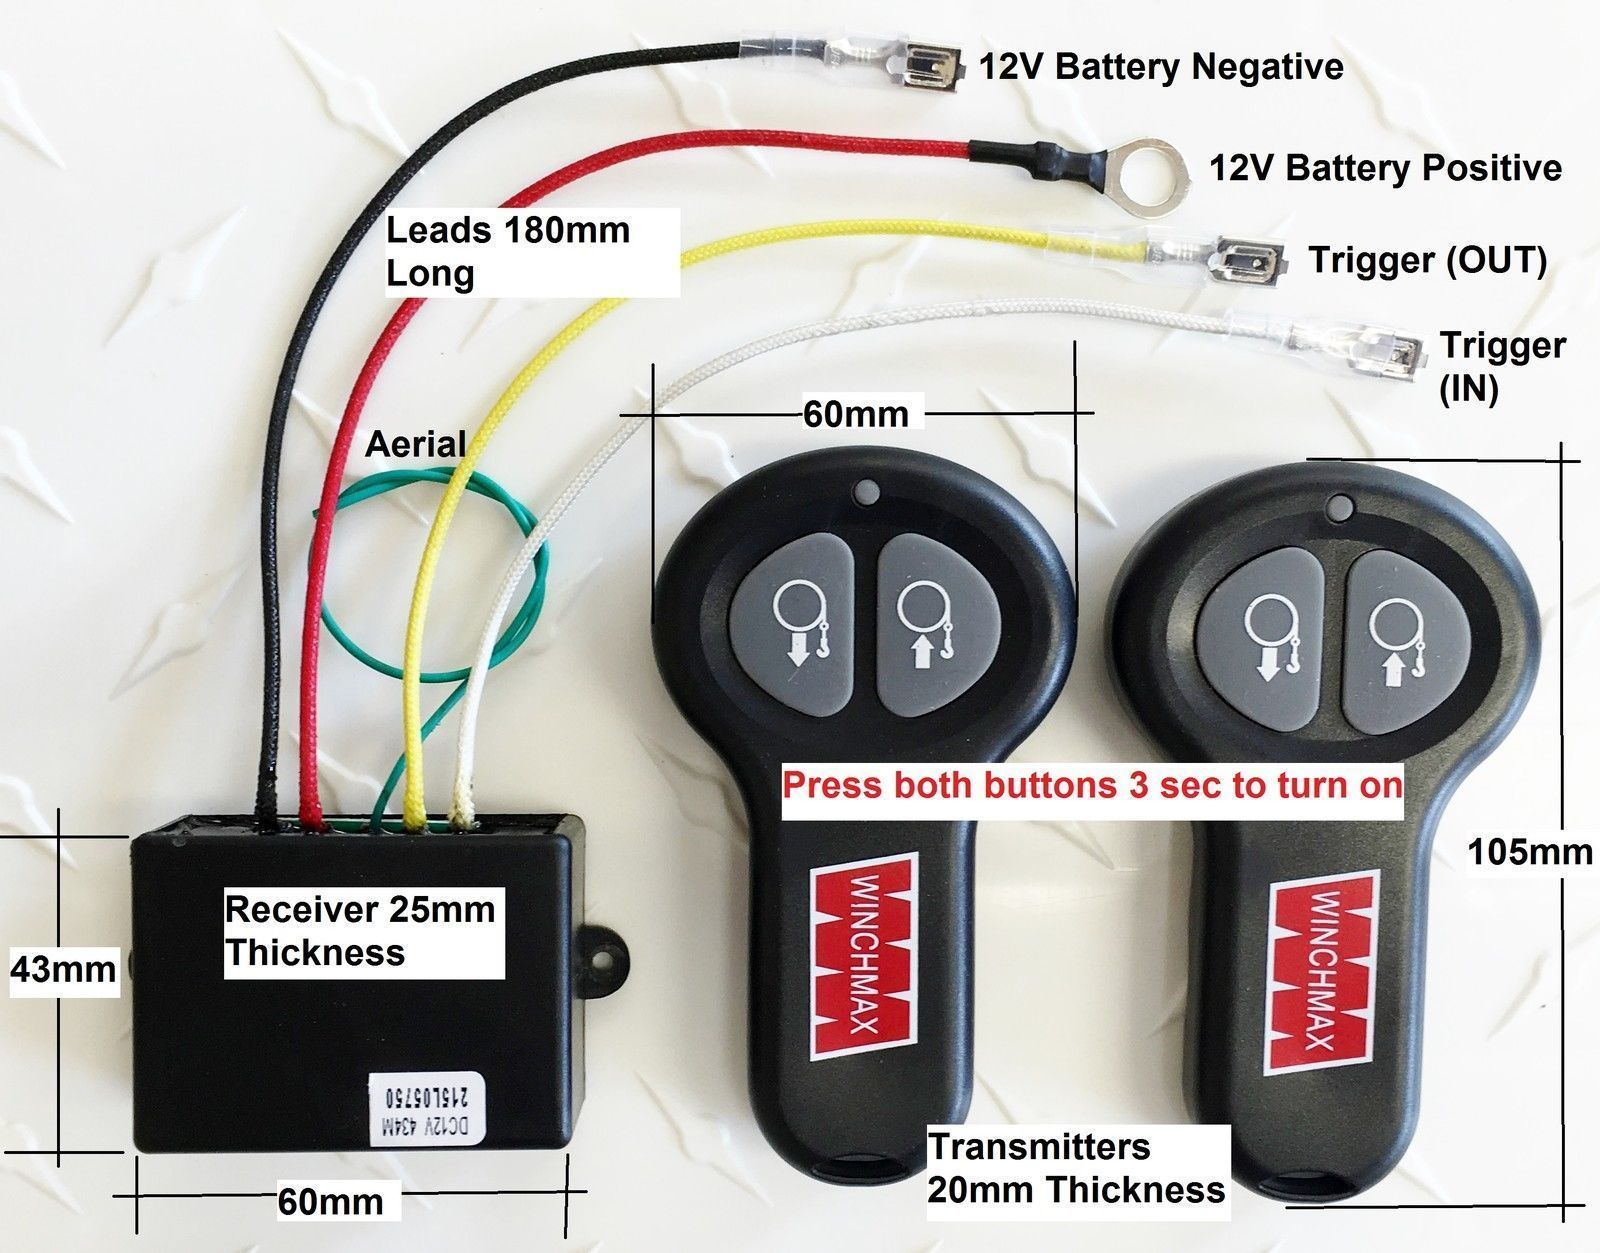 ebay___57 wireless winch remote control twin handset winchmax brand 12v 12 ebay wireless winch remote wiring diagram at bakdesigns.co